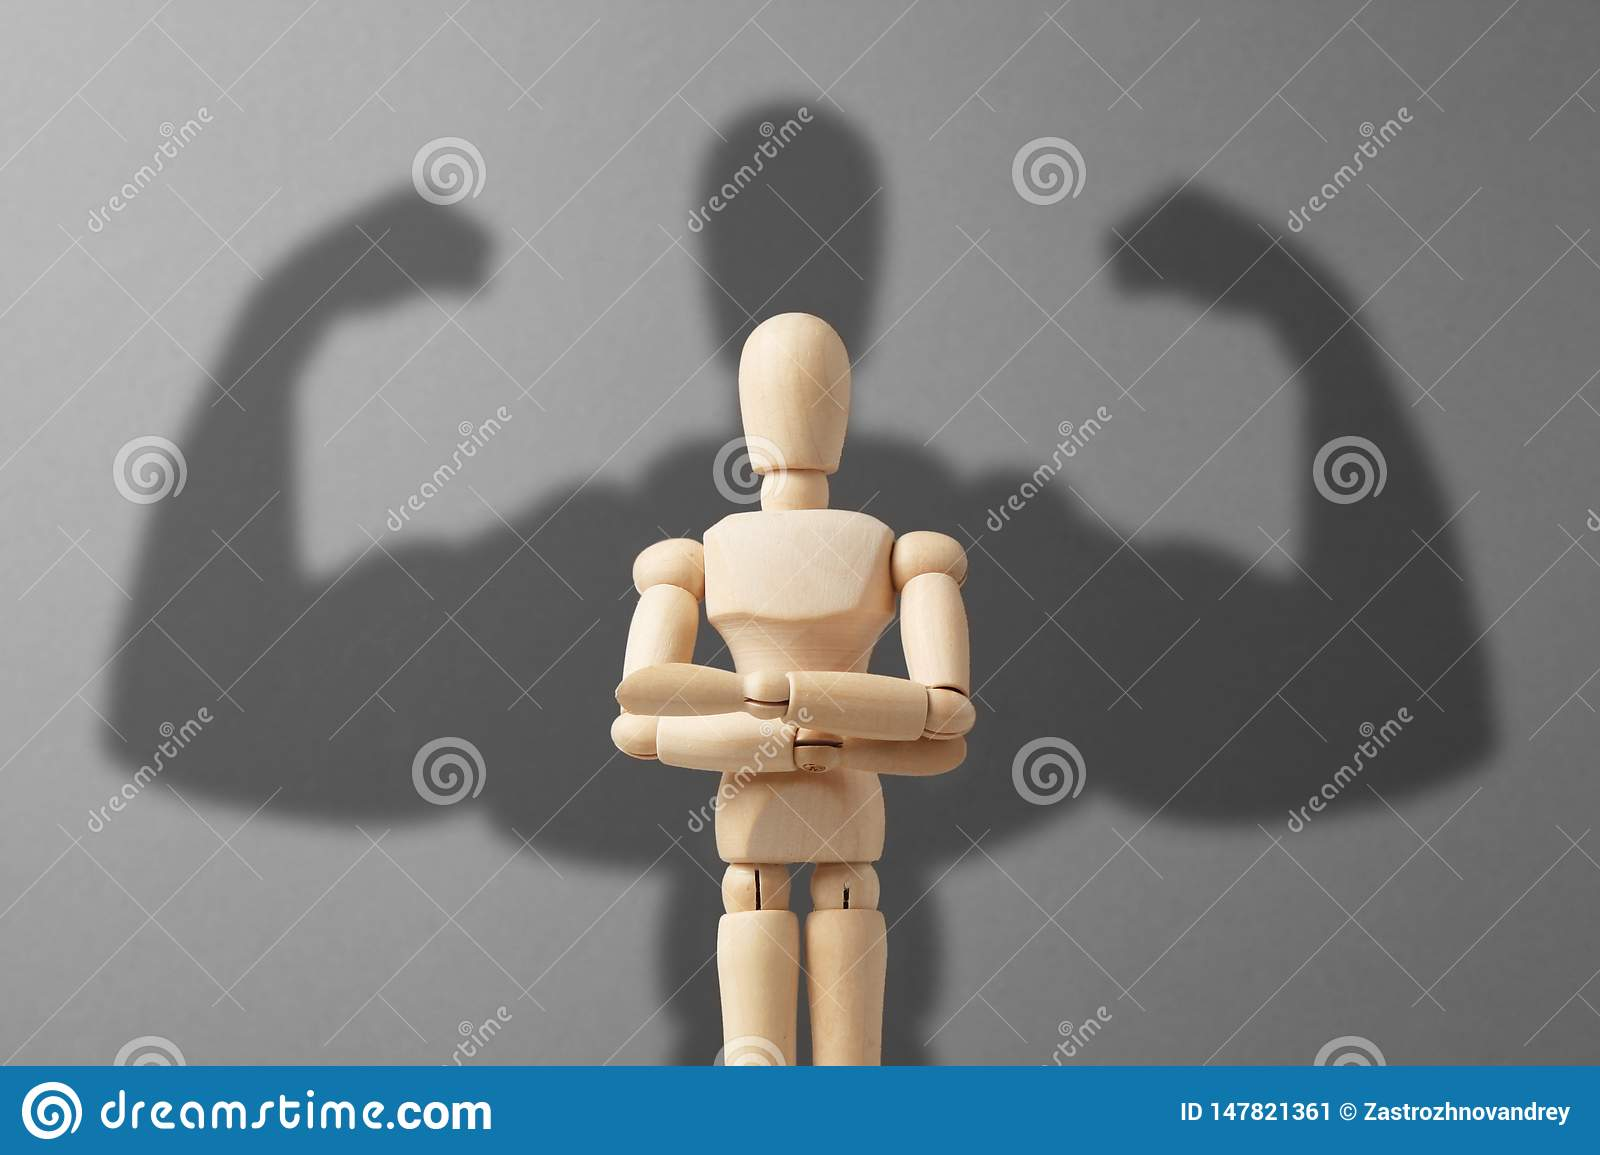 Businessman figure with strong shadow. Concept of power in business